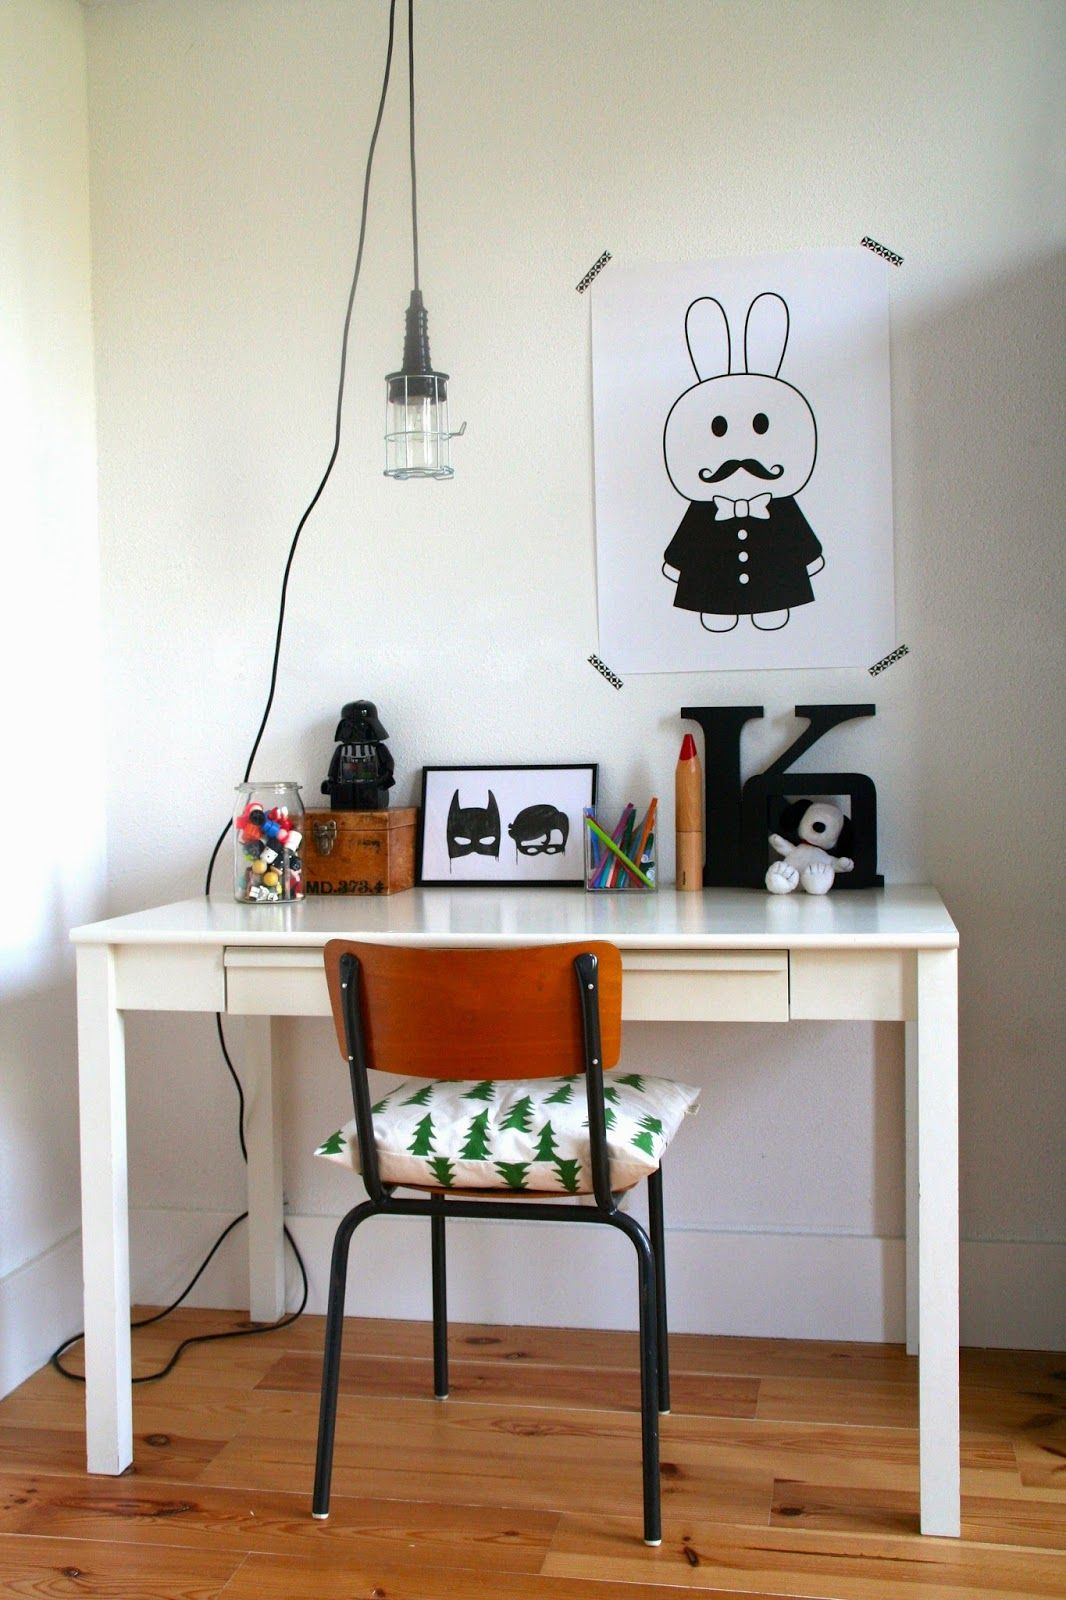 coos-je interior: make-over kids room.